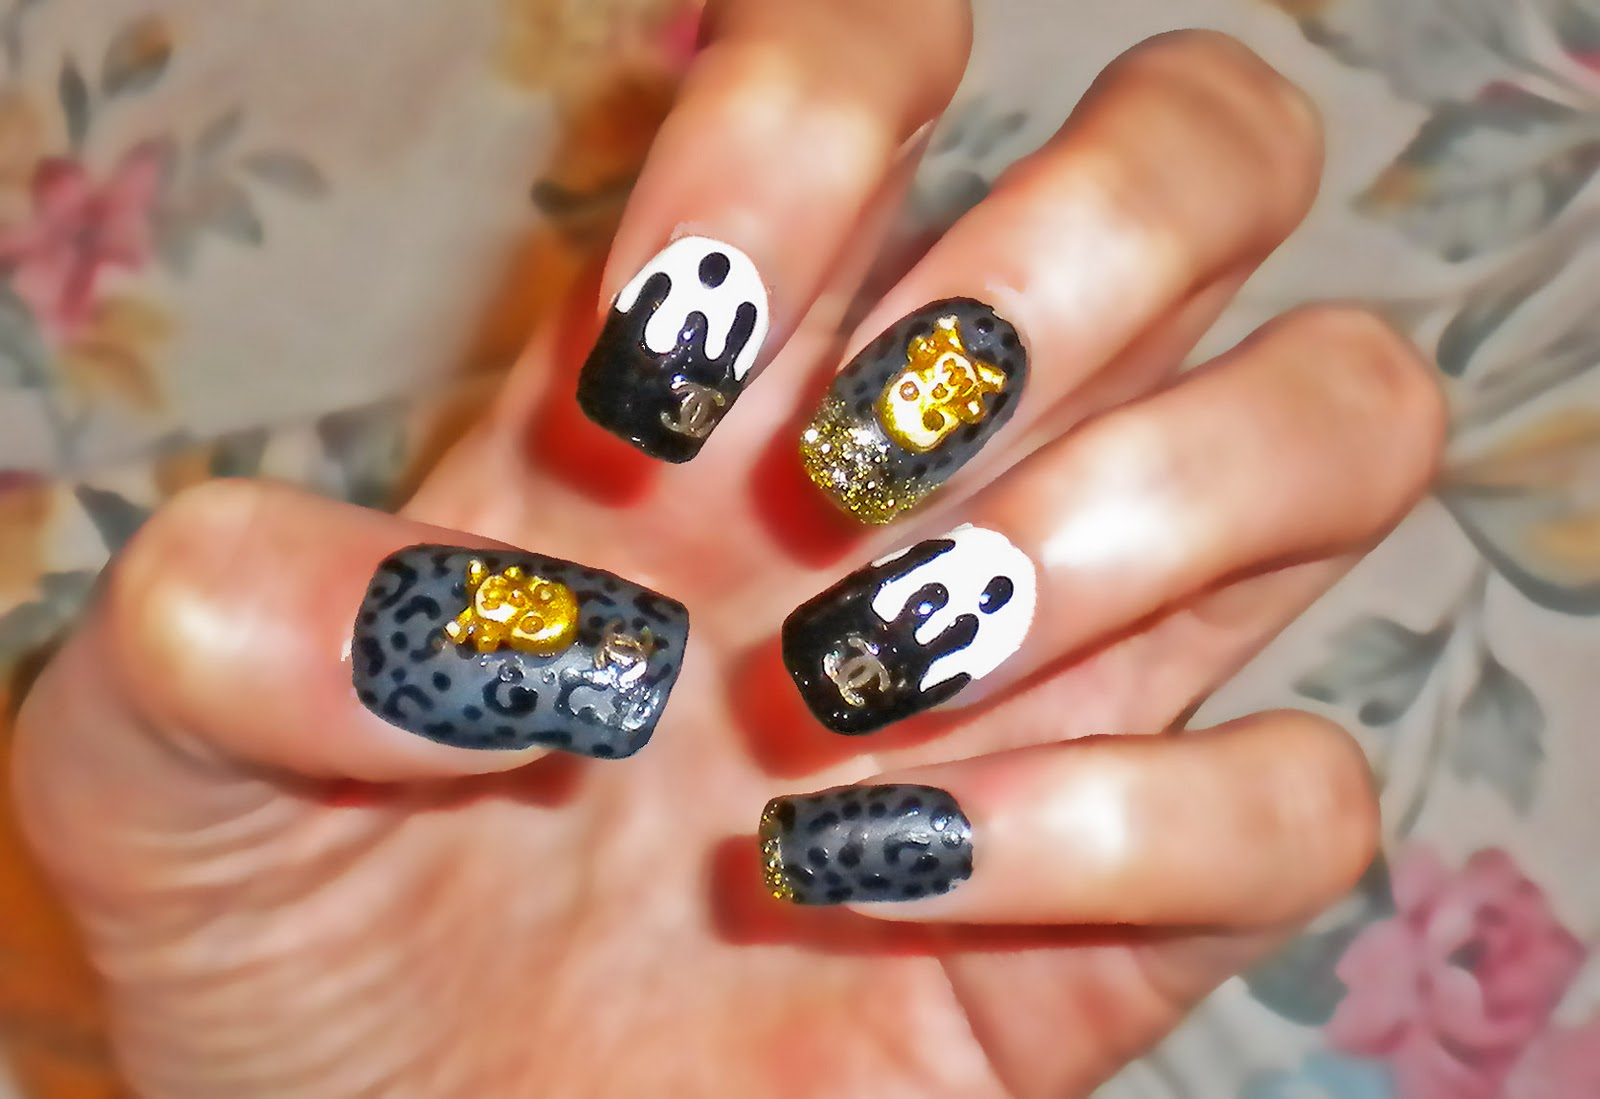 Chanel Nail Tips http://peachykeenstyleblog.blogspot.com/2010/10/skulls-drippy-chanel-and-leopard-print.html